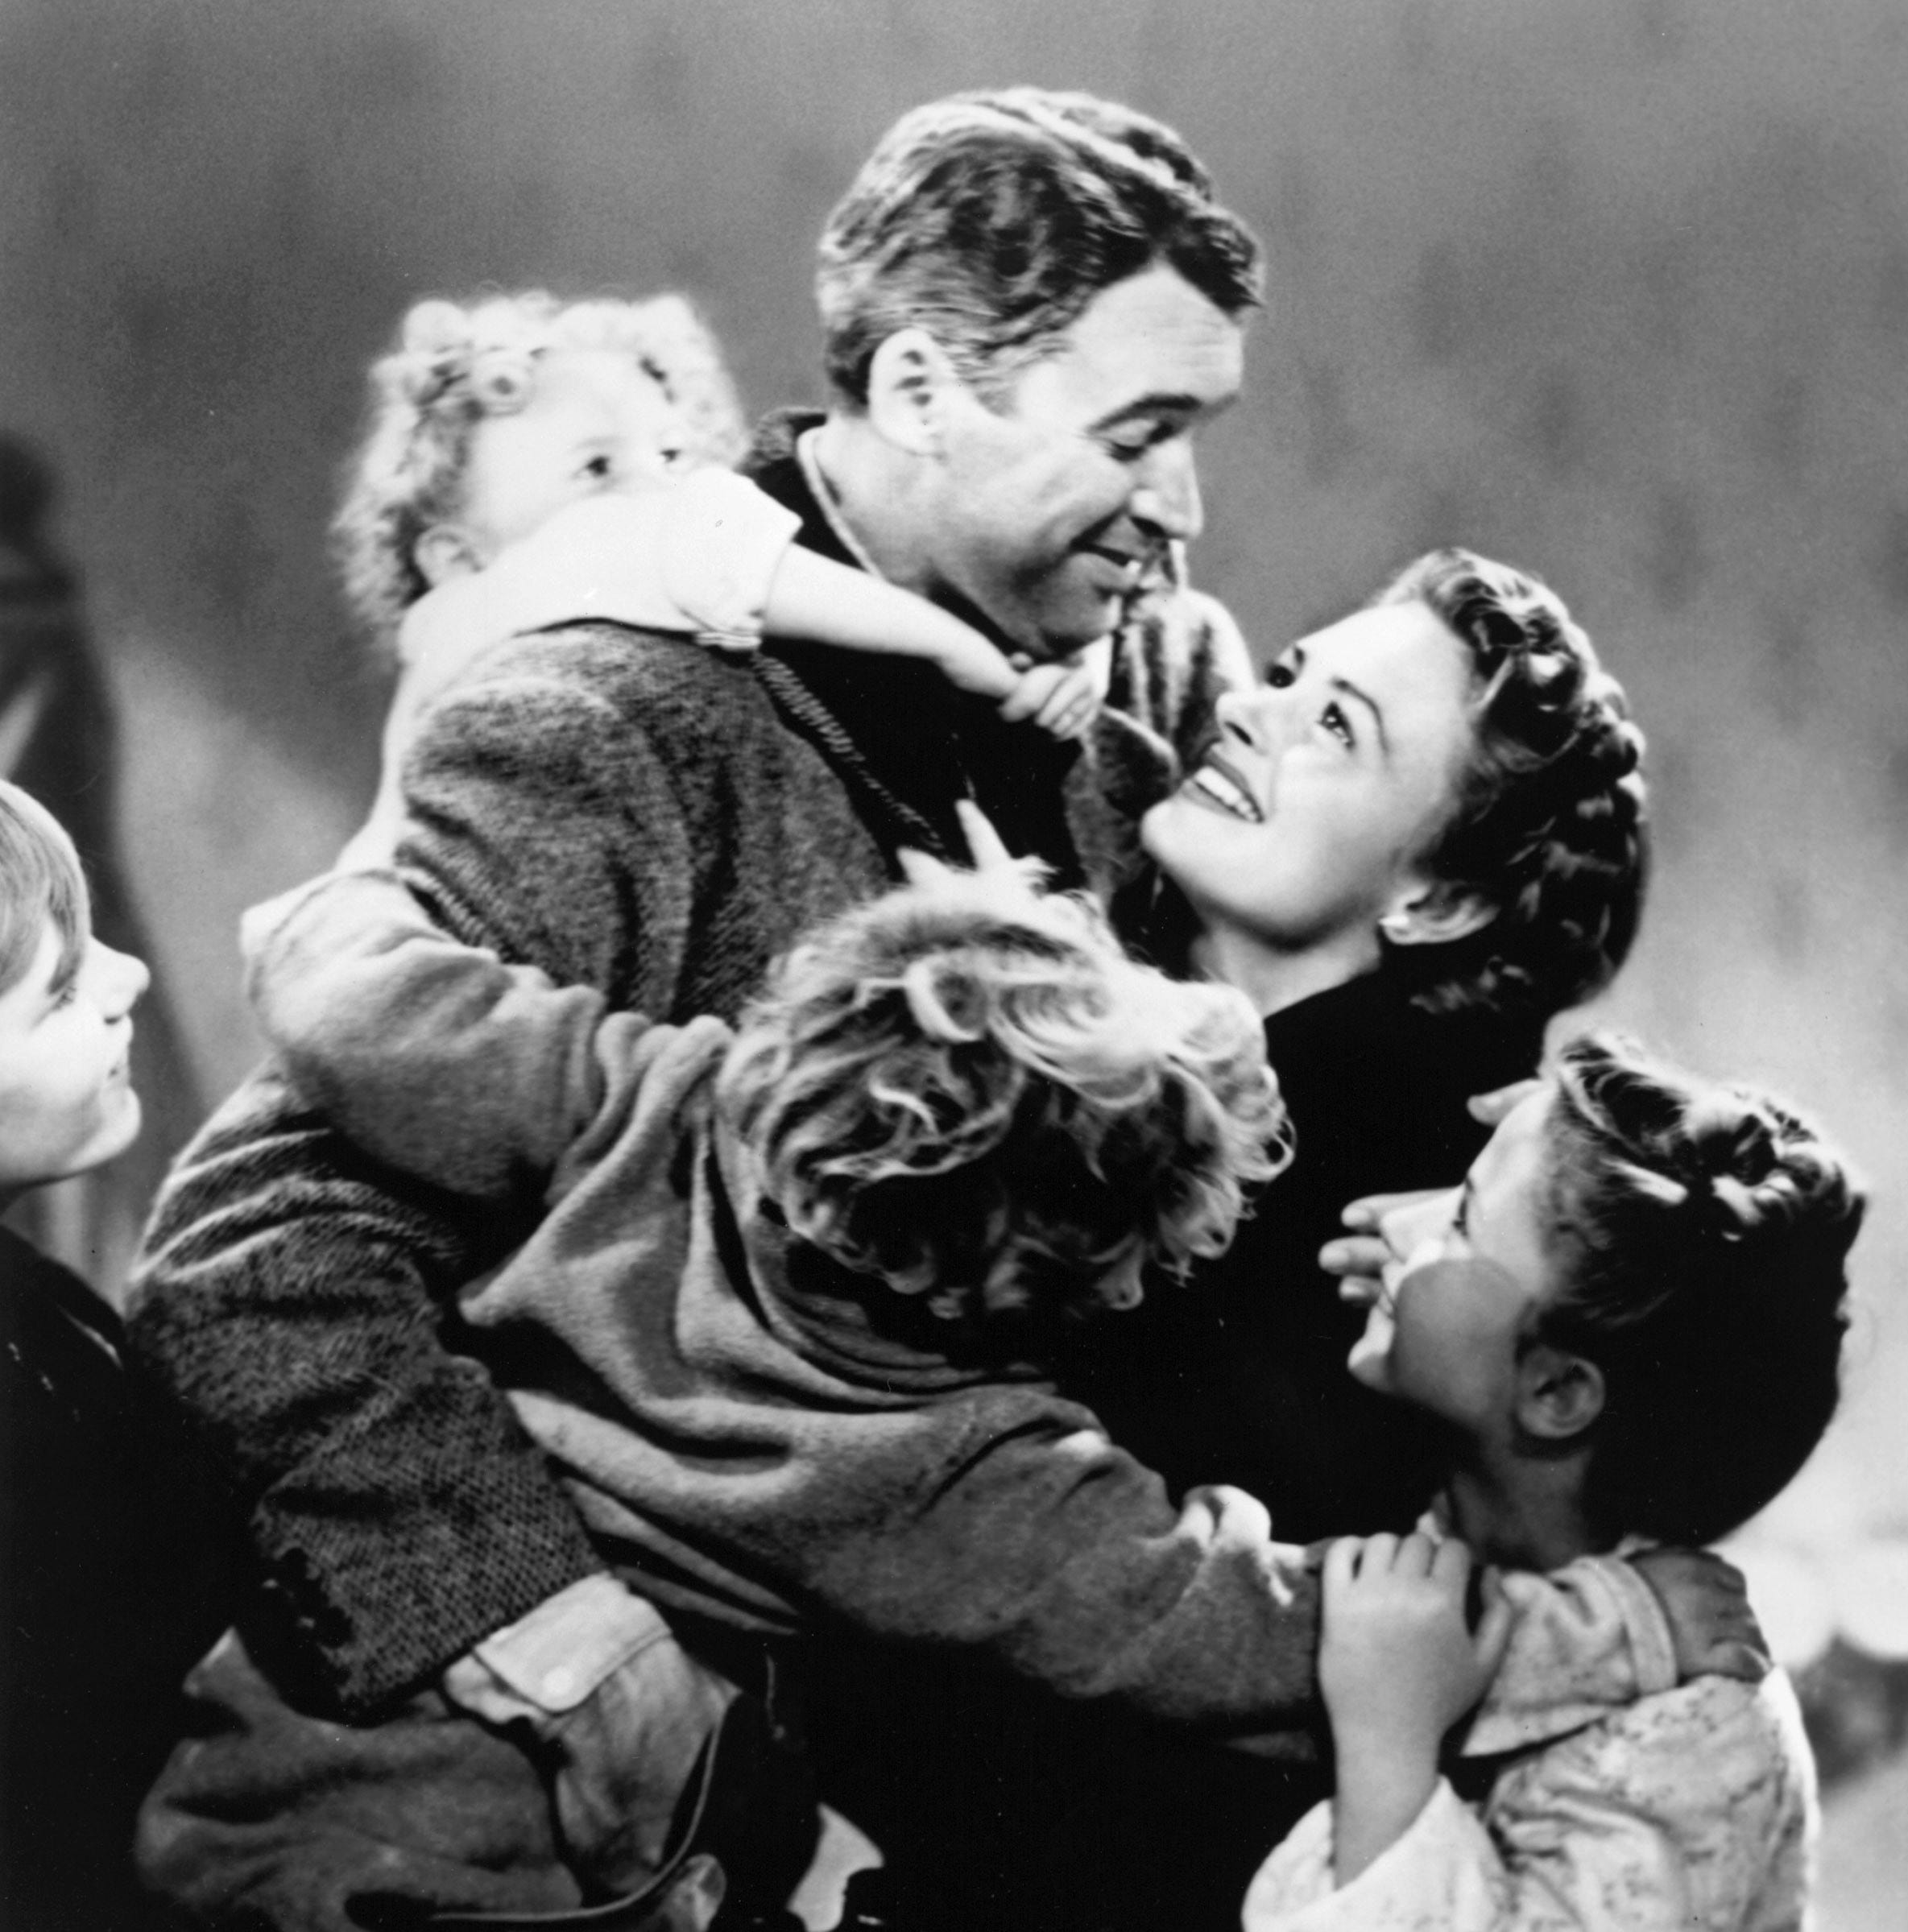 Denison, home of Donna Reed, to host screening of 'It's a Wonderful Life' with Spanish subtitles